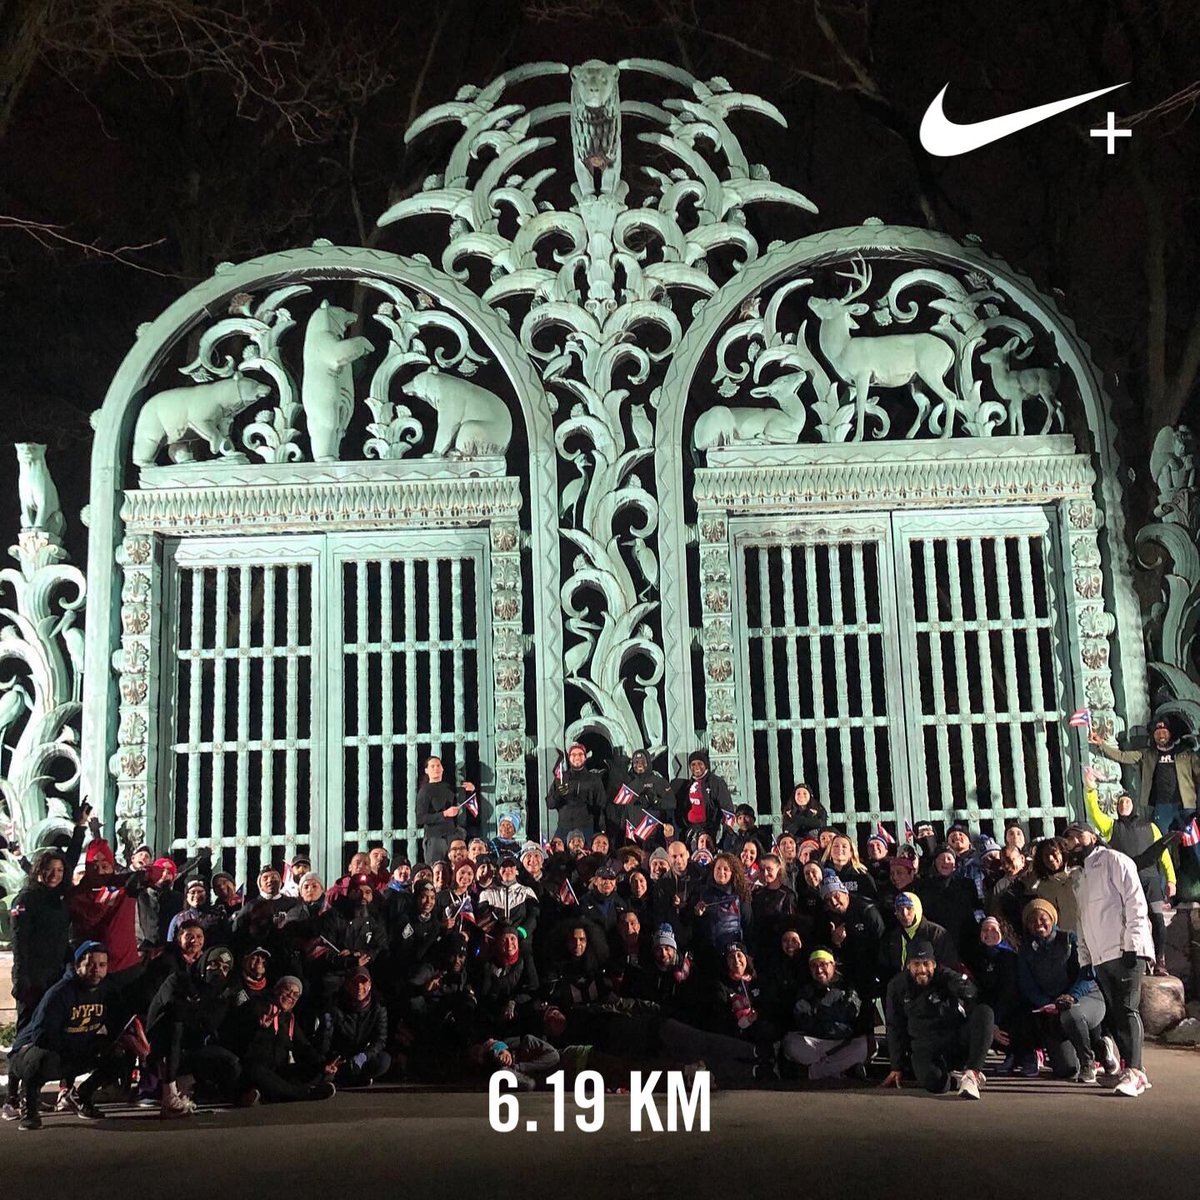 Run for Puerto Rico with all the BRonx squads!!!  #justdoit ⁦@Nike⁩ #nikeplus #nrc #nikenyc #urbex #neverstopexploring<br>http://pic.twitter.com/7fM42p6RKC